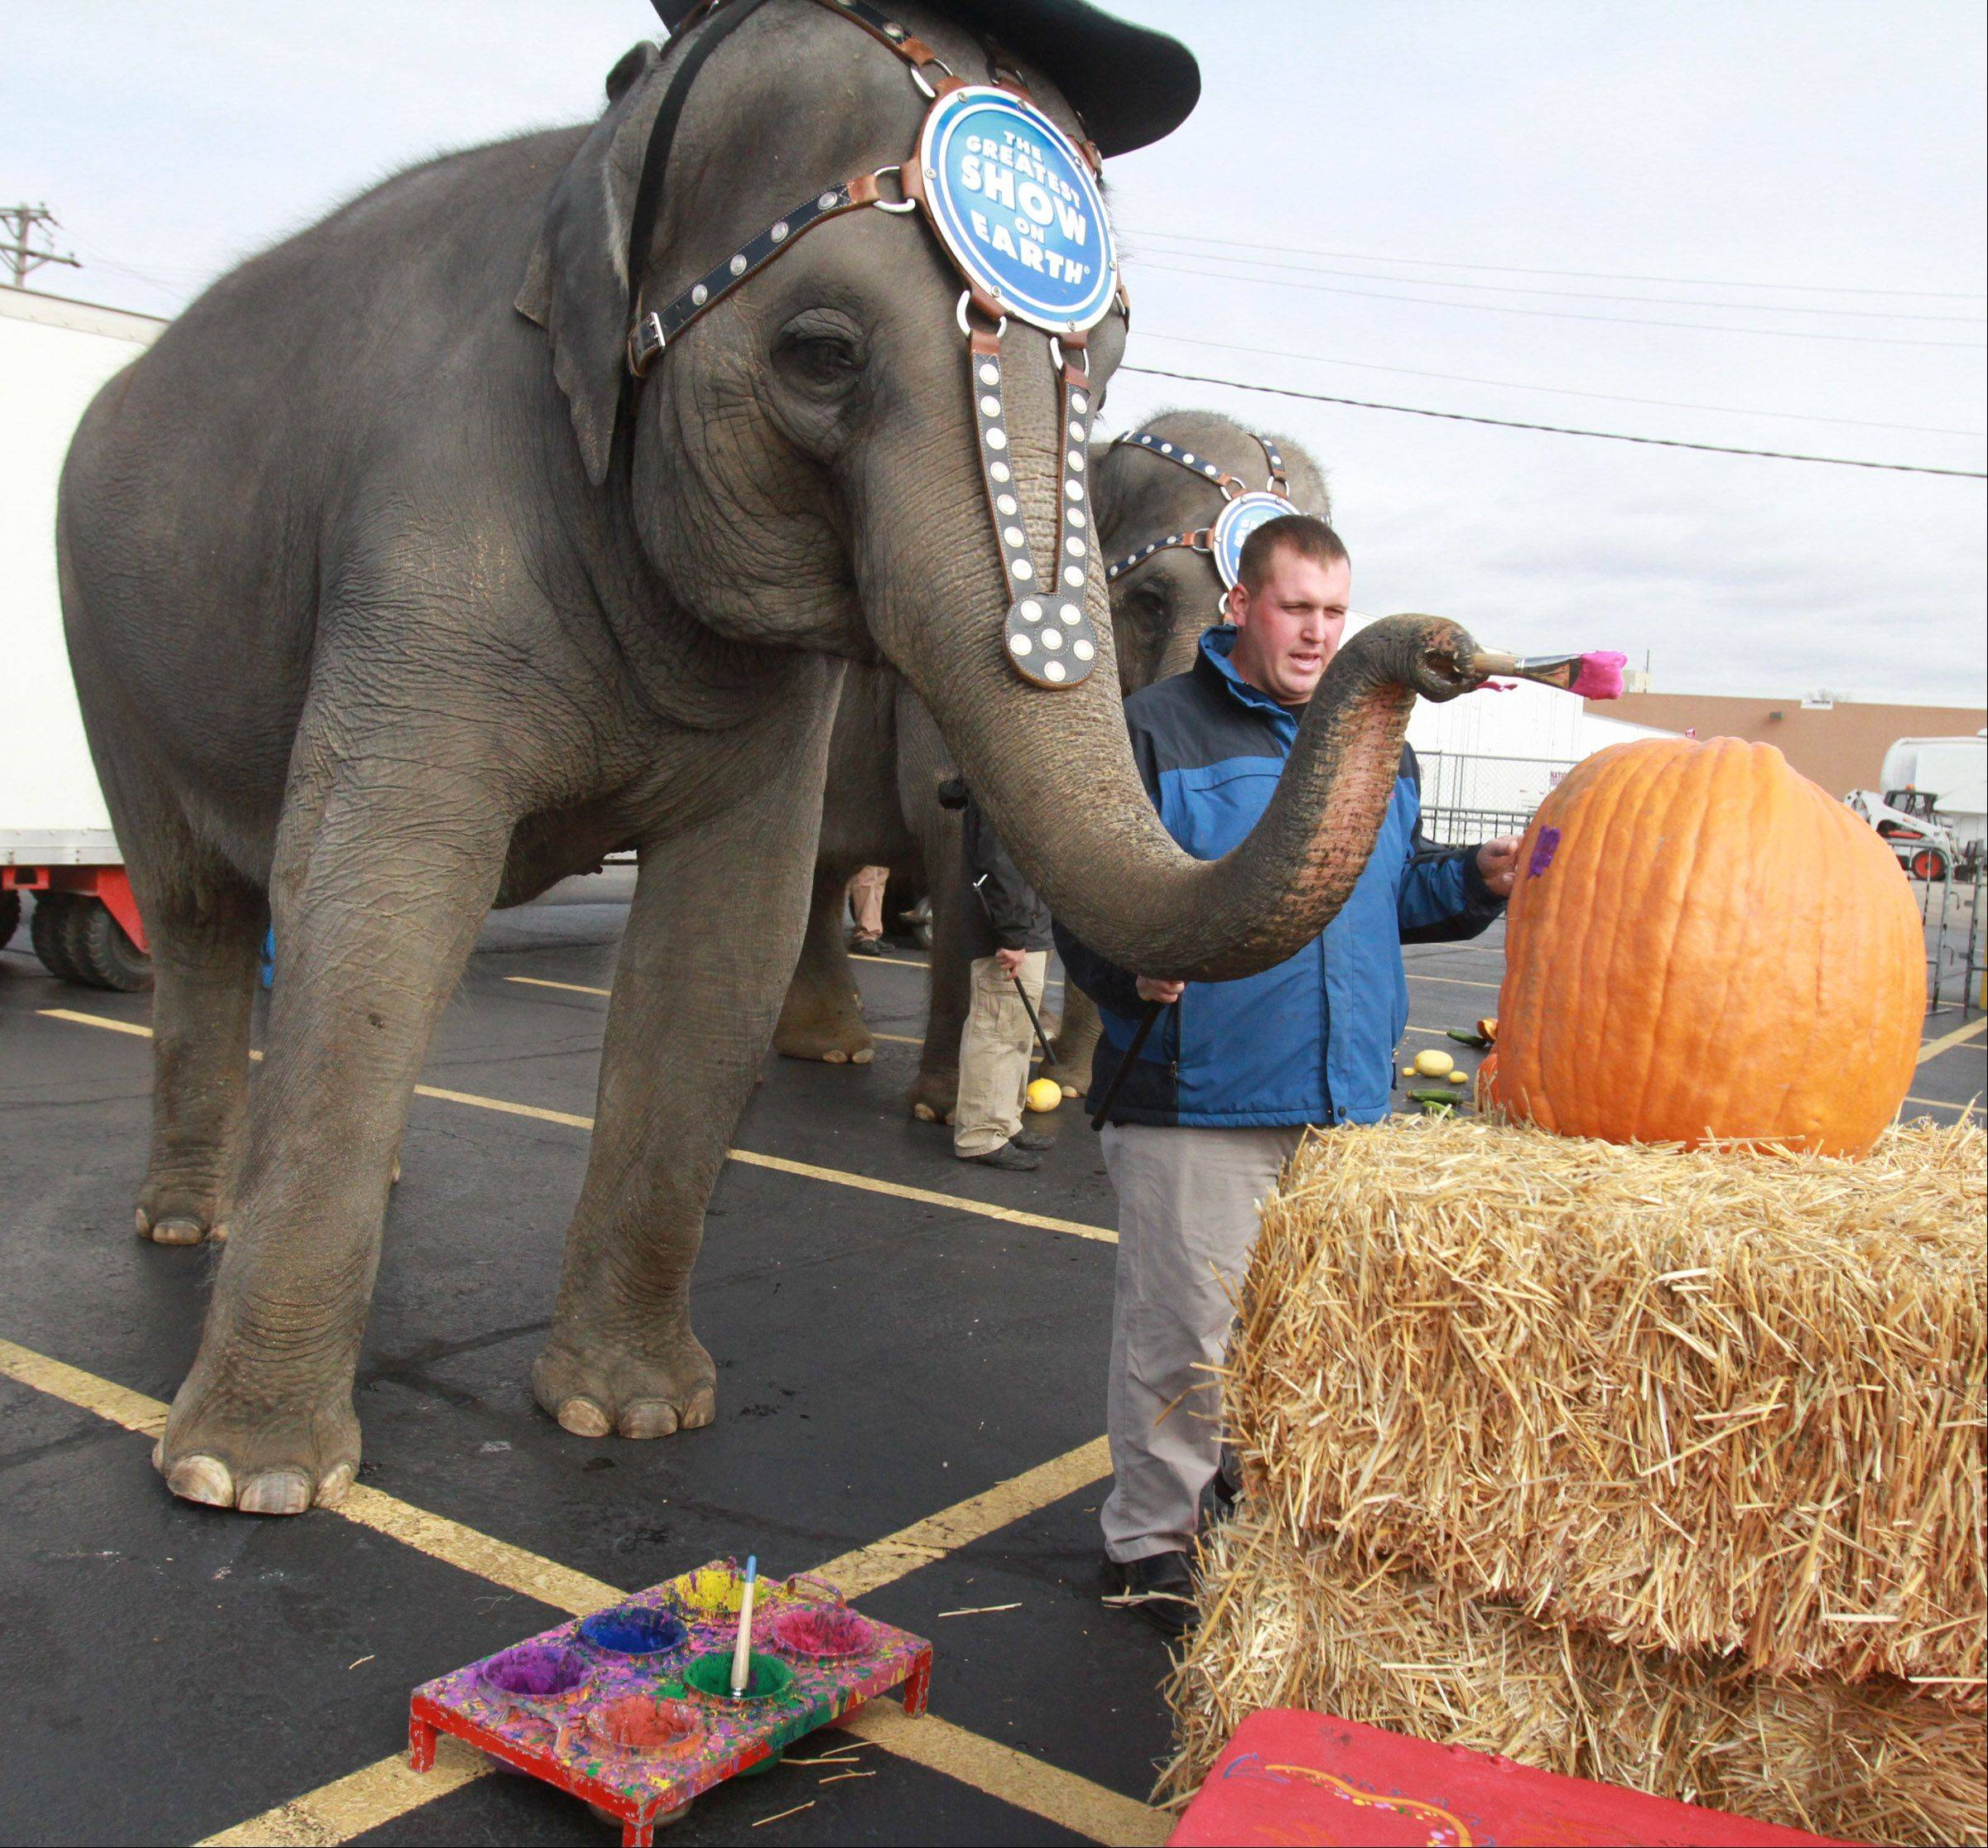 Ringling Brothers and Barnum and Bailey Circus Asian elephant Kelly Ann paints a pumpkin Wednesday with instructions from Joey Frisco, senior elephant trainer, to kick off the arrival of the circus at the Allstate Arena in Rosemont. The circus will perform there Thursday through Nov. 11.